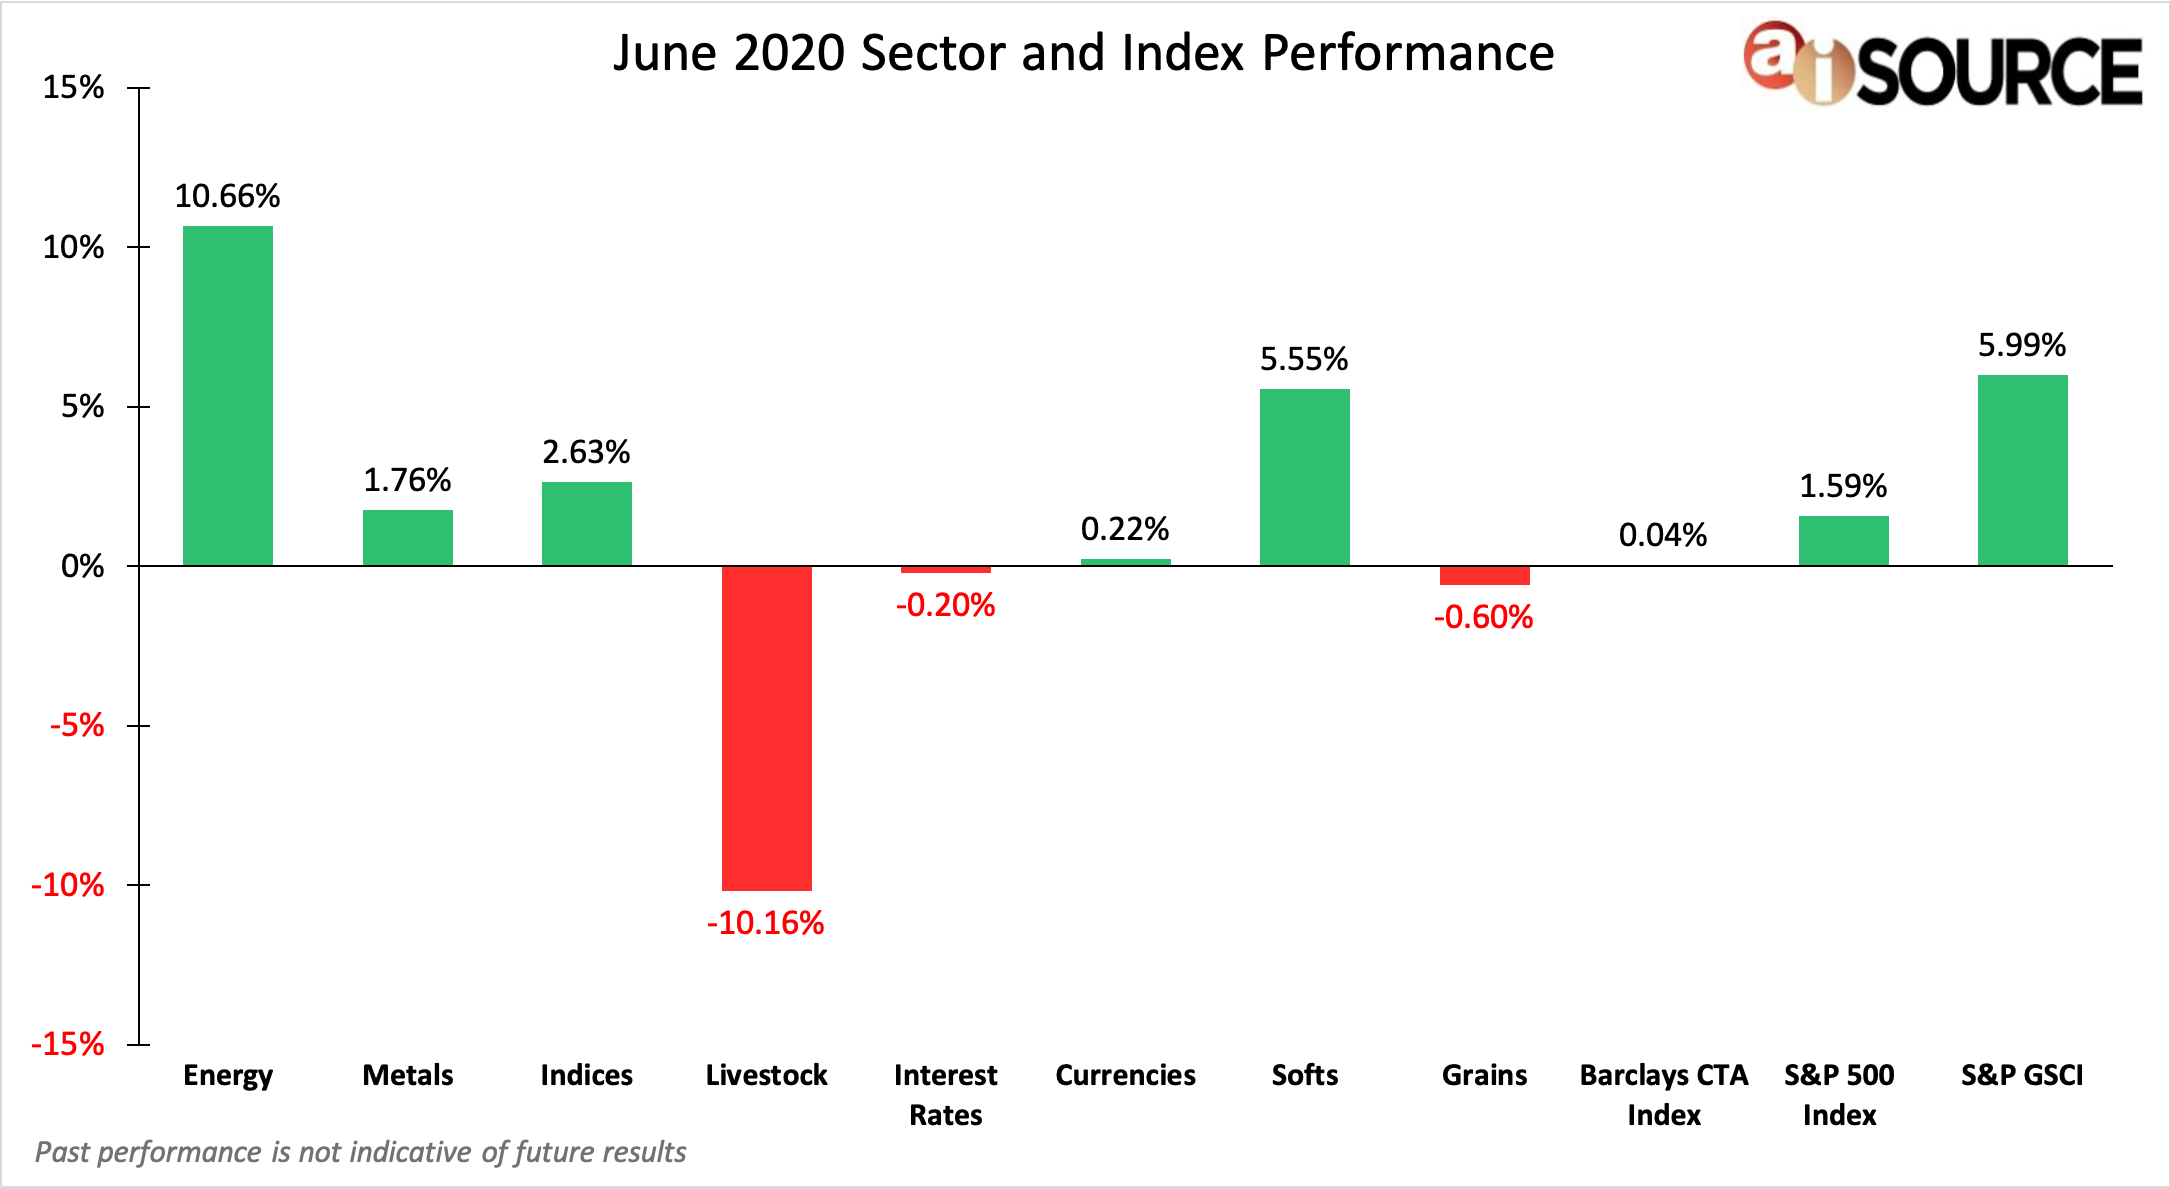 June 2020 Sector and Index Performance